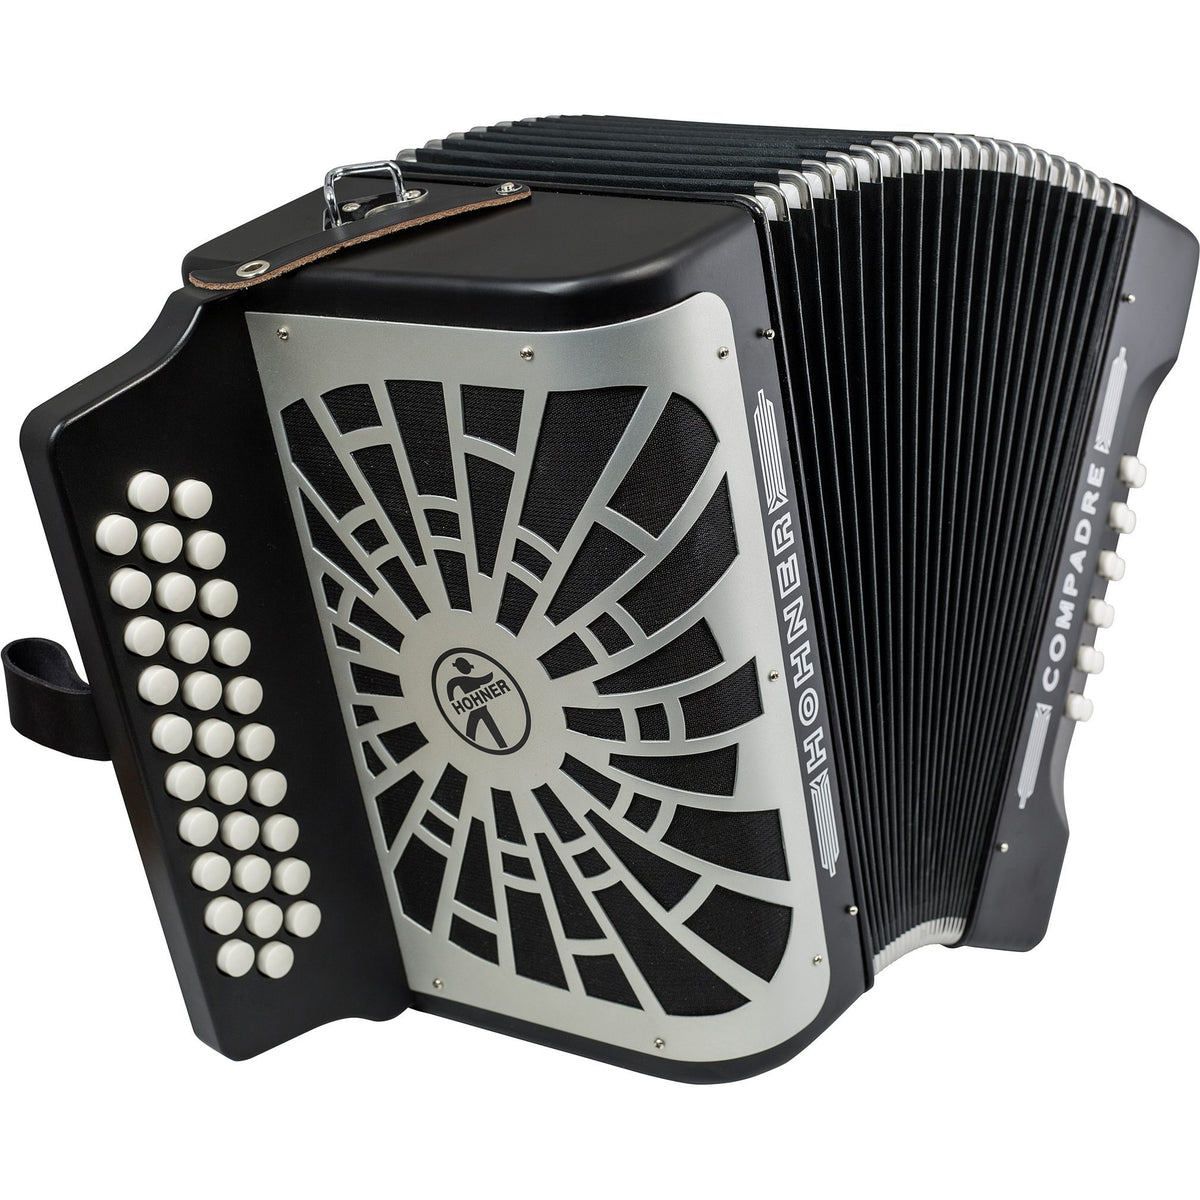 Hohner Compadre Accordion (with Gig Bag), Black, E/A/D, with Gig Bag